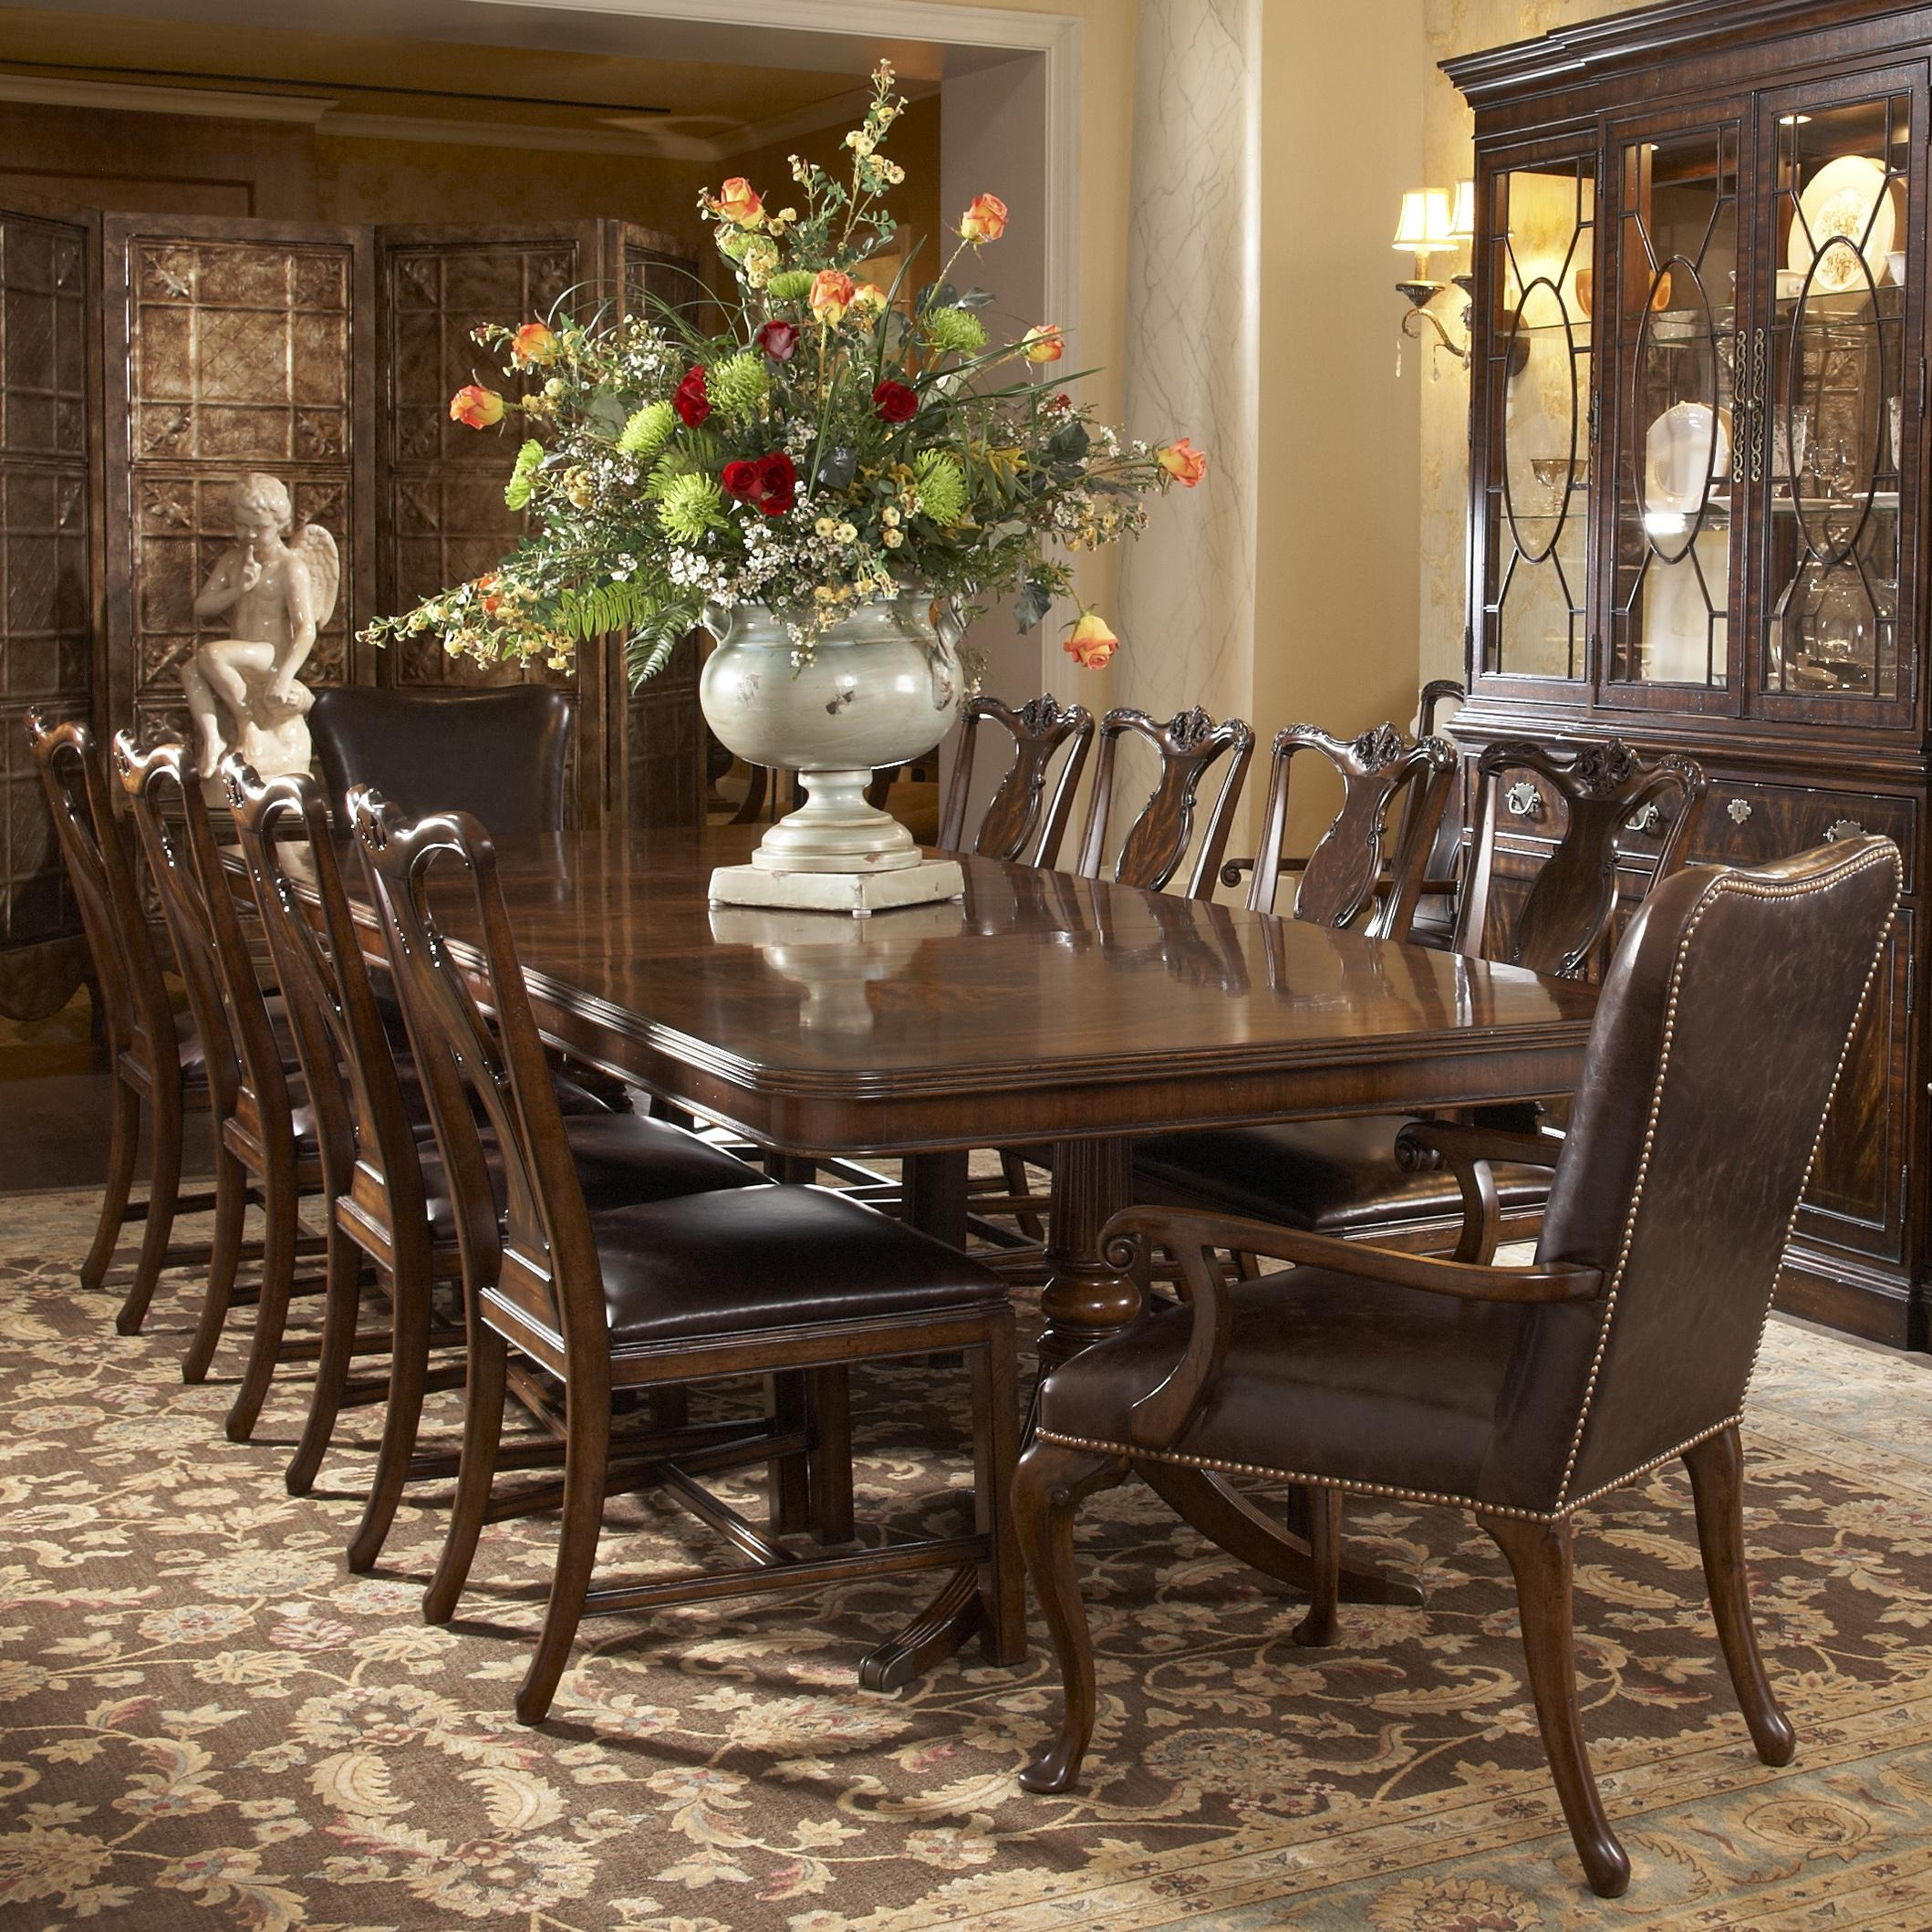 11 Piece Double Pedestal Dining Table And Splat Back Side Chair With